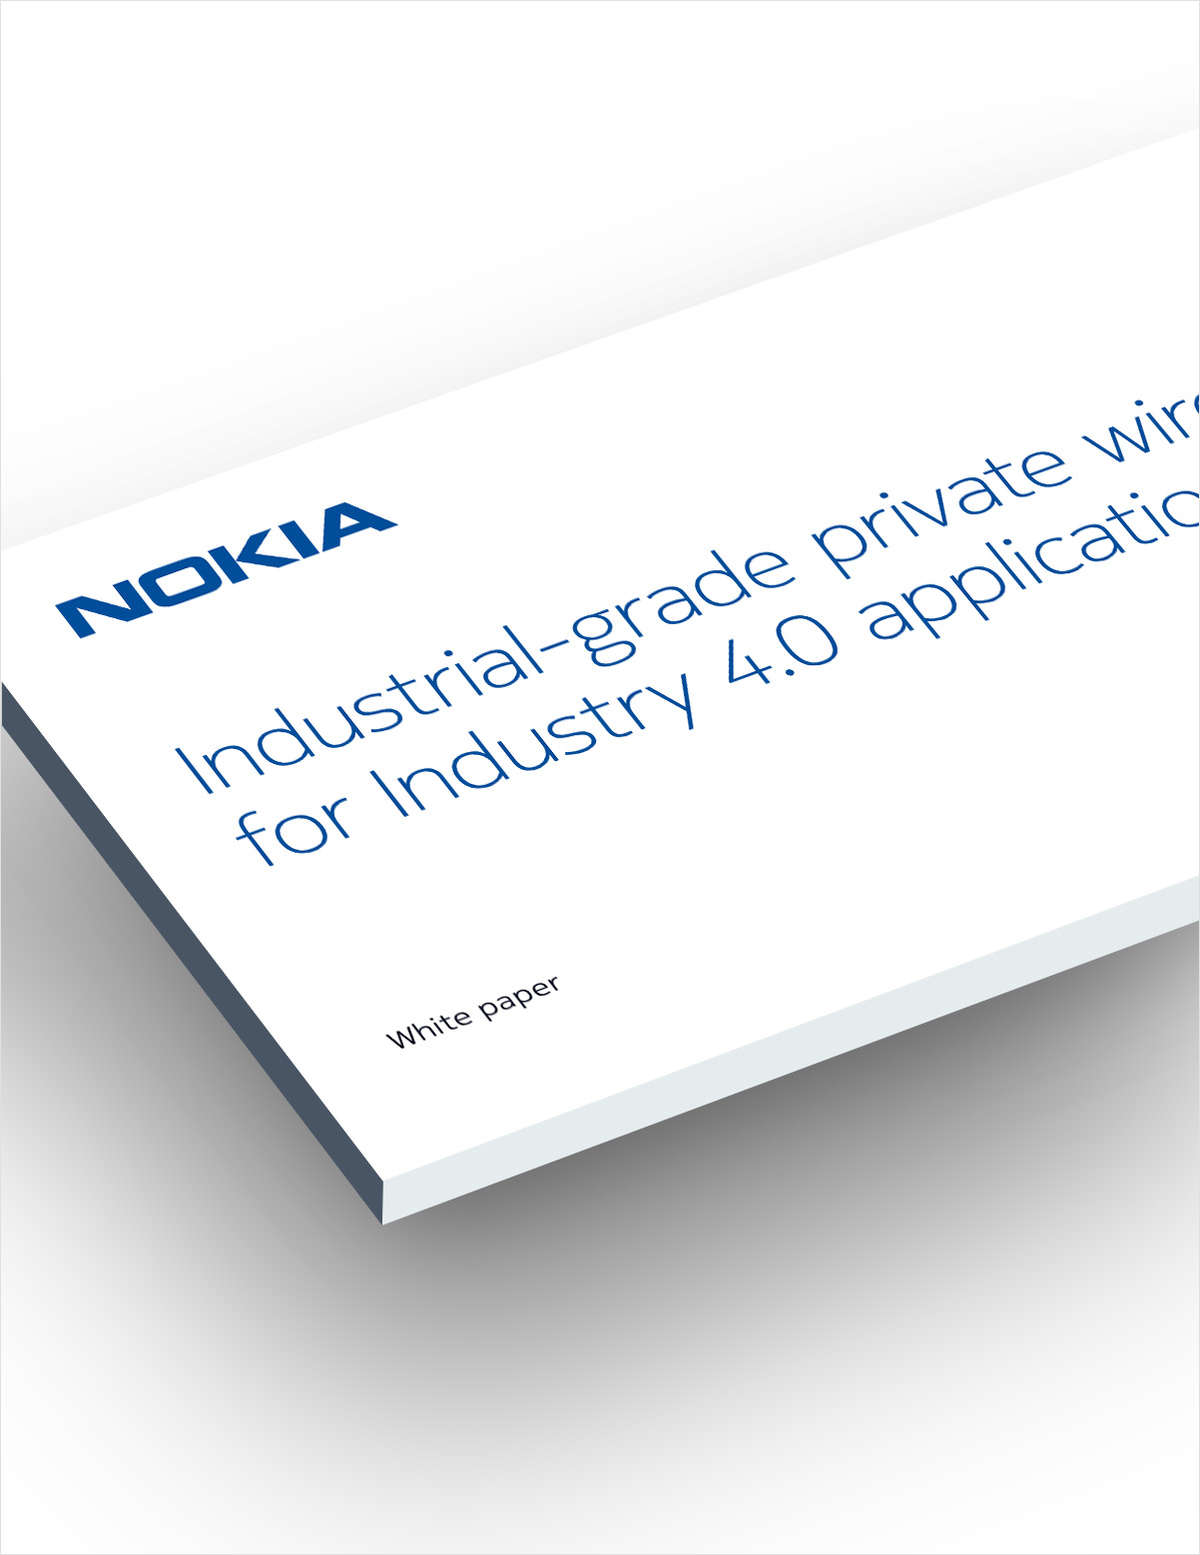 Industrial-grade Private Wireless for Industry 4.0 applications